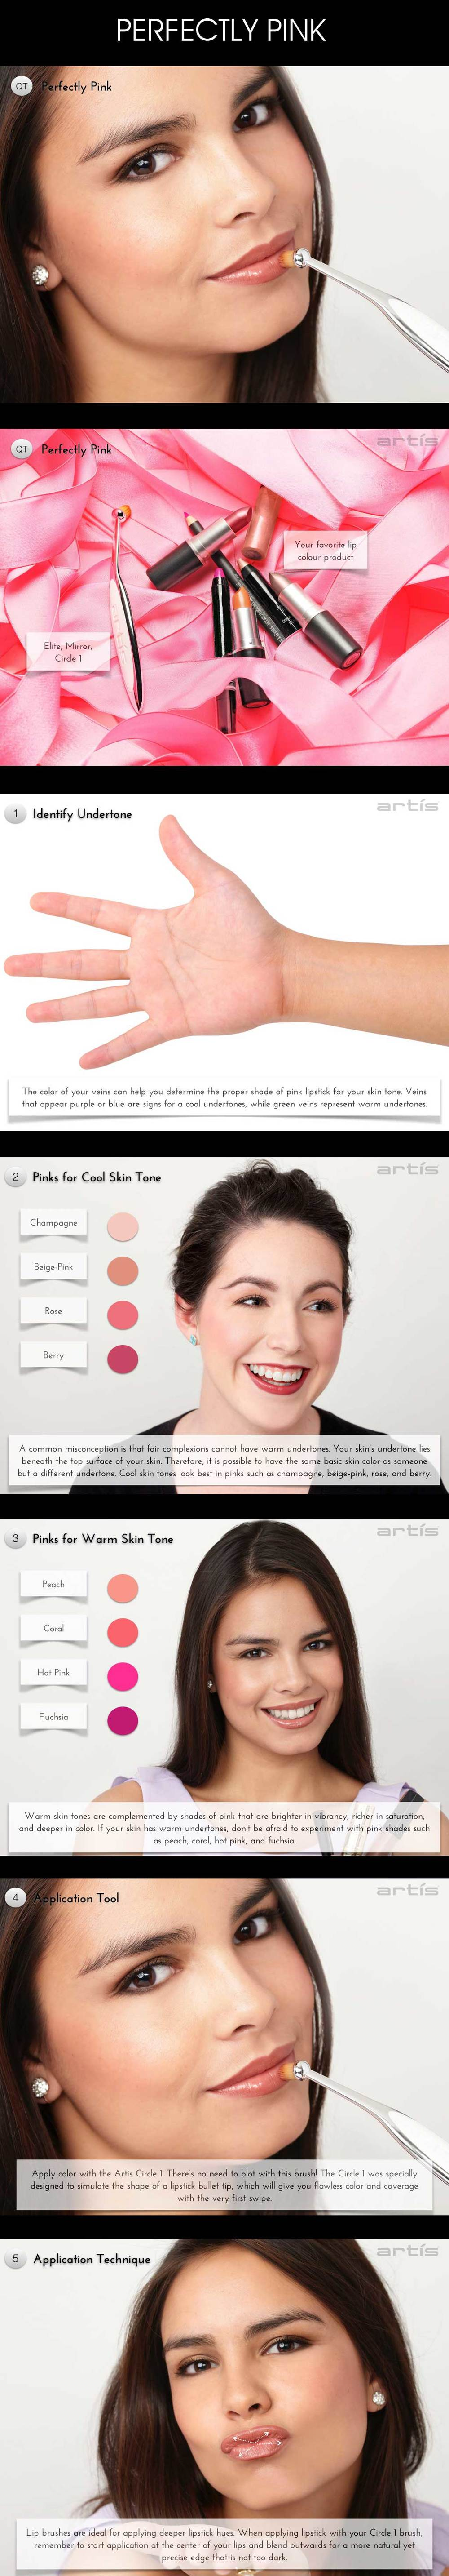 perfectly pink tutorial all images